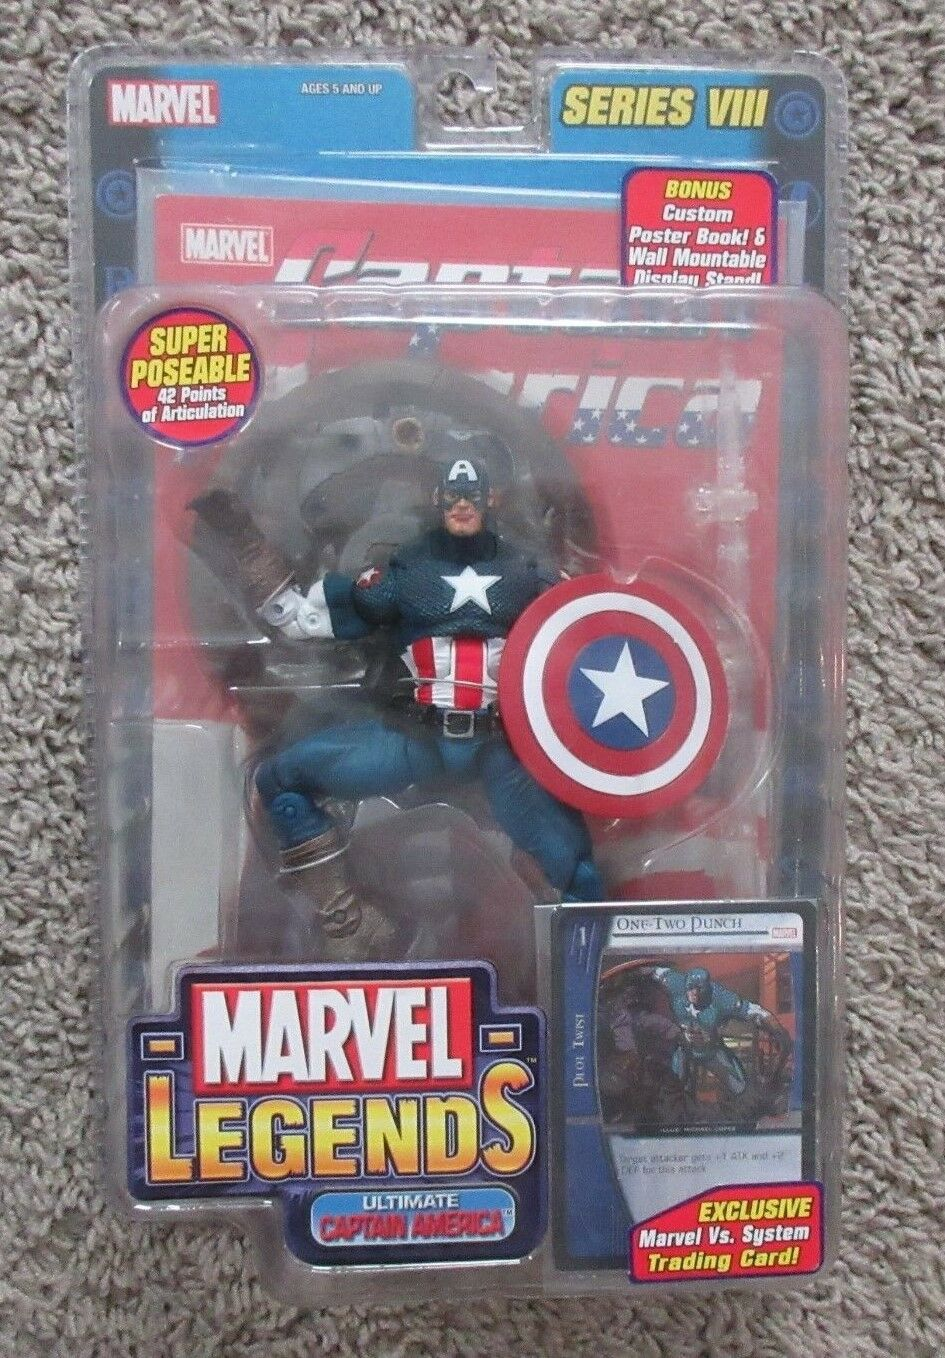 MARVEL LEGENDS CAPTAIN AMERICA RARE AVENGERS SERIES 3 VIII INFINITE TOYBIZ 8